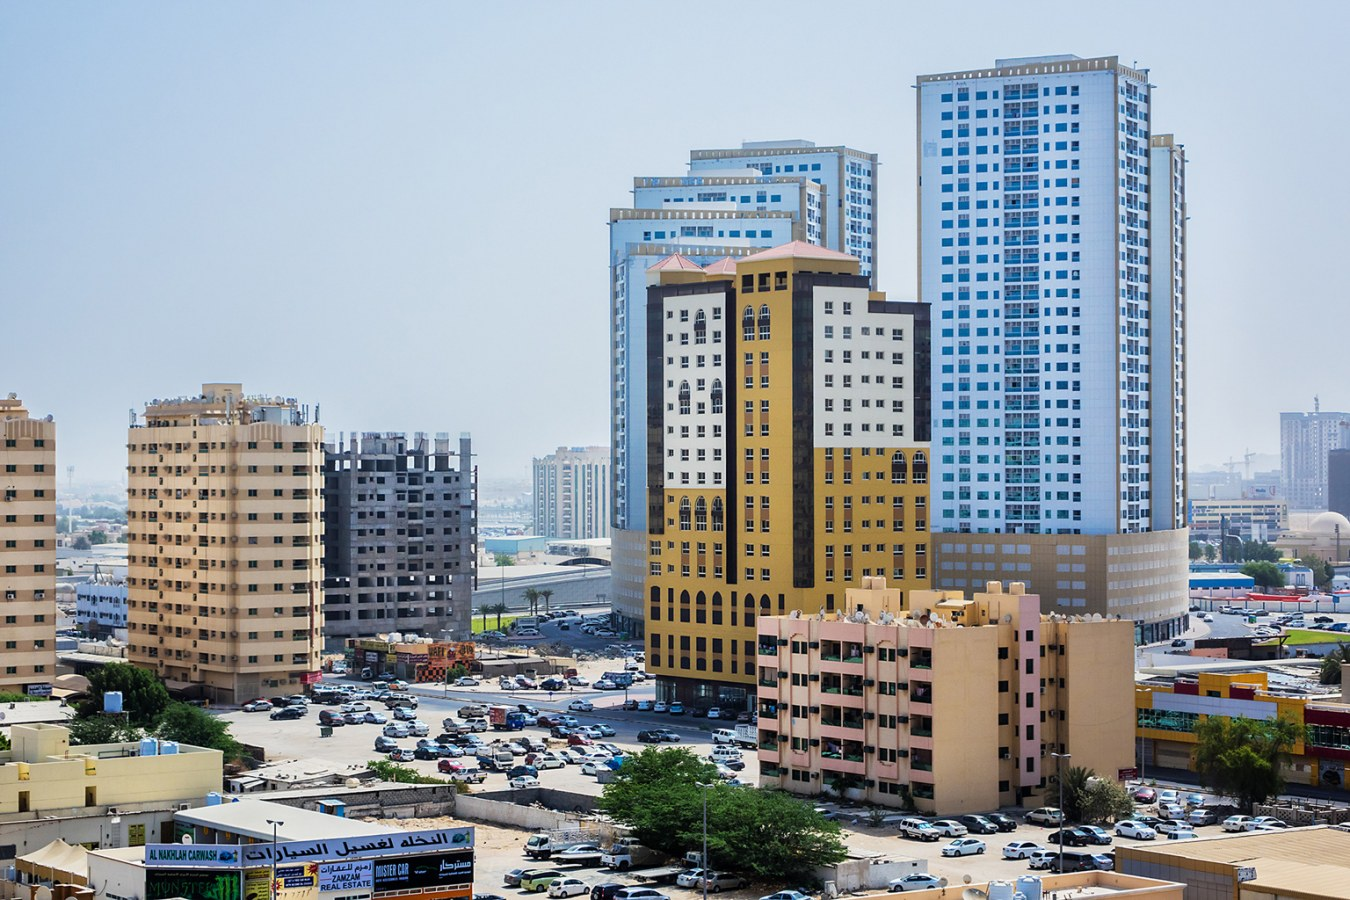 The cityscape of Ajman, UAE with both high-rise and low-rise buildings and the blue sky in the background